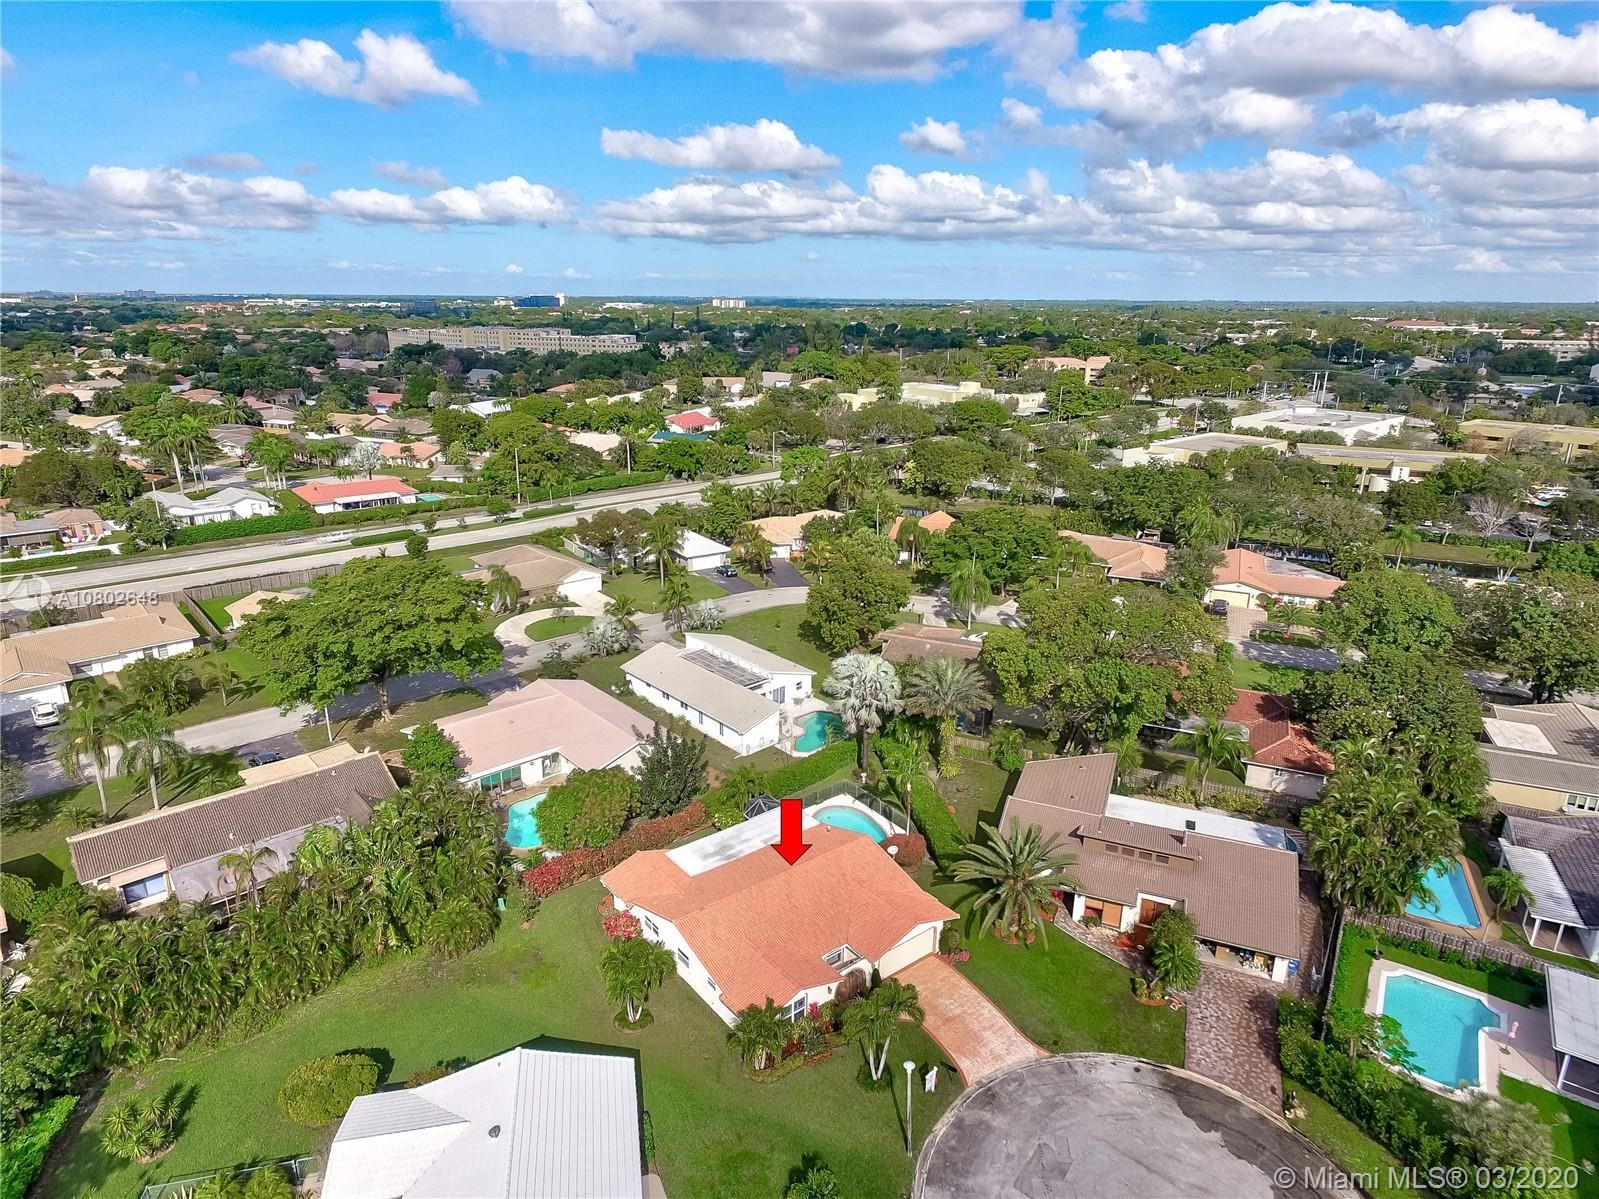 8377 NW 19th Ct, Coral Springs, FL 33071 - #: A10802648